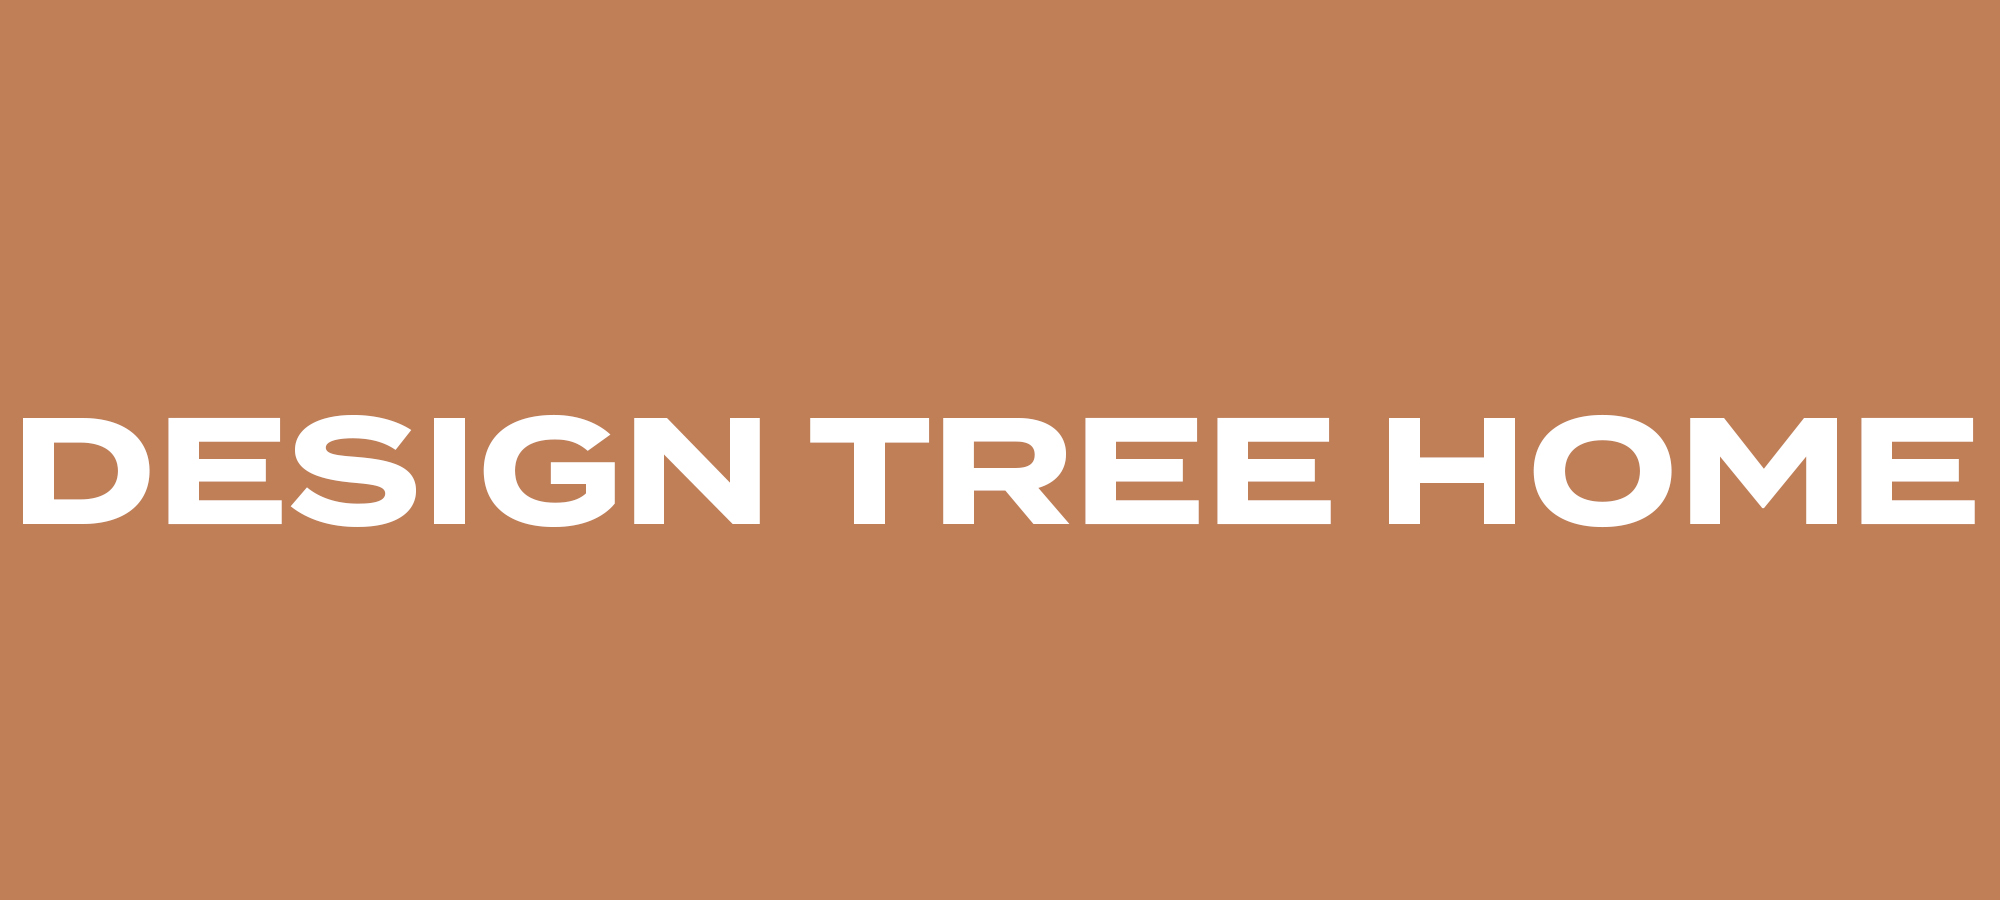 Design Tree Home